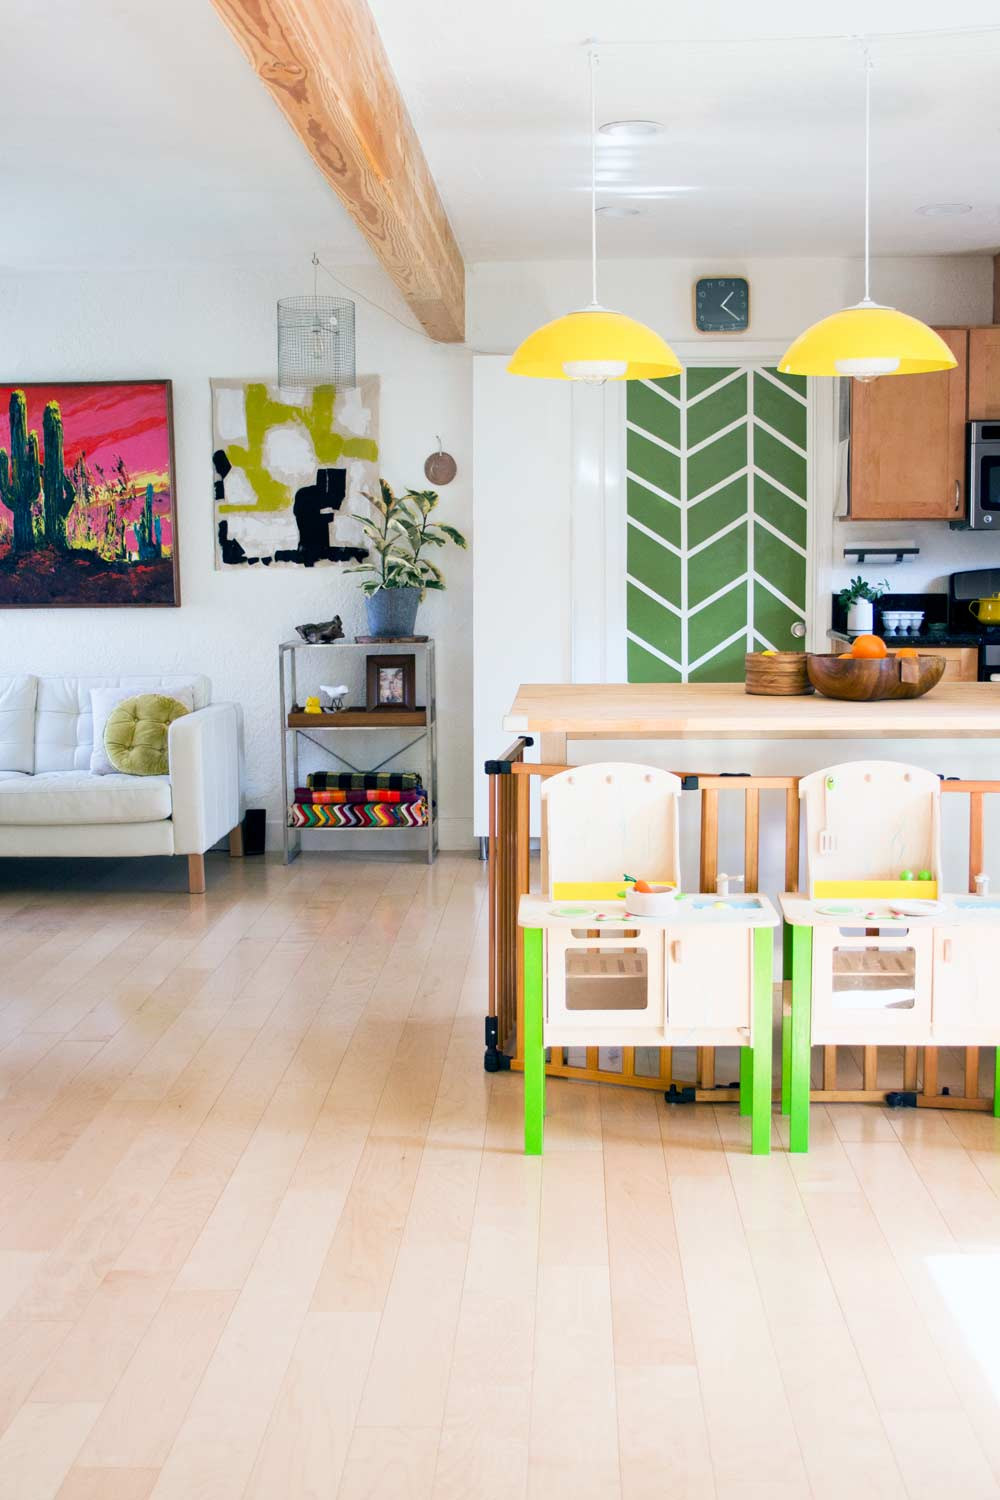 A Golden Modern Playhouse in Sacramento, on Design*Sponge